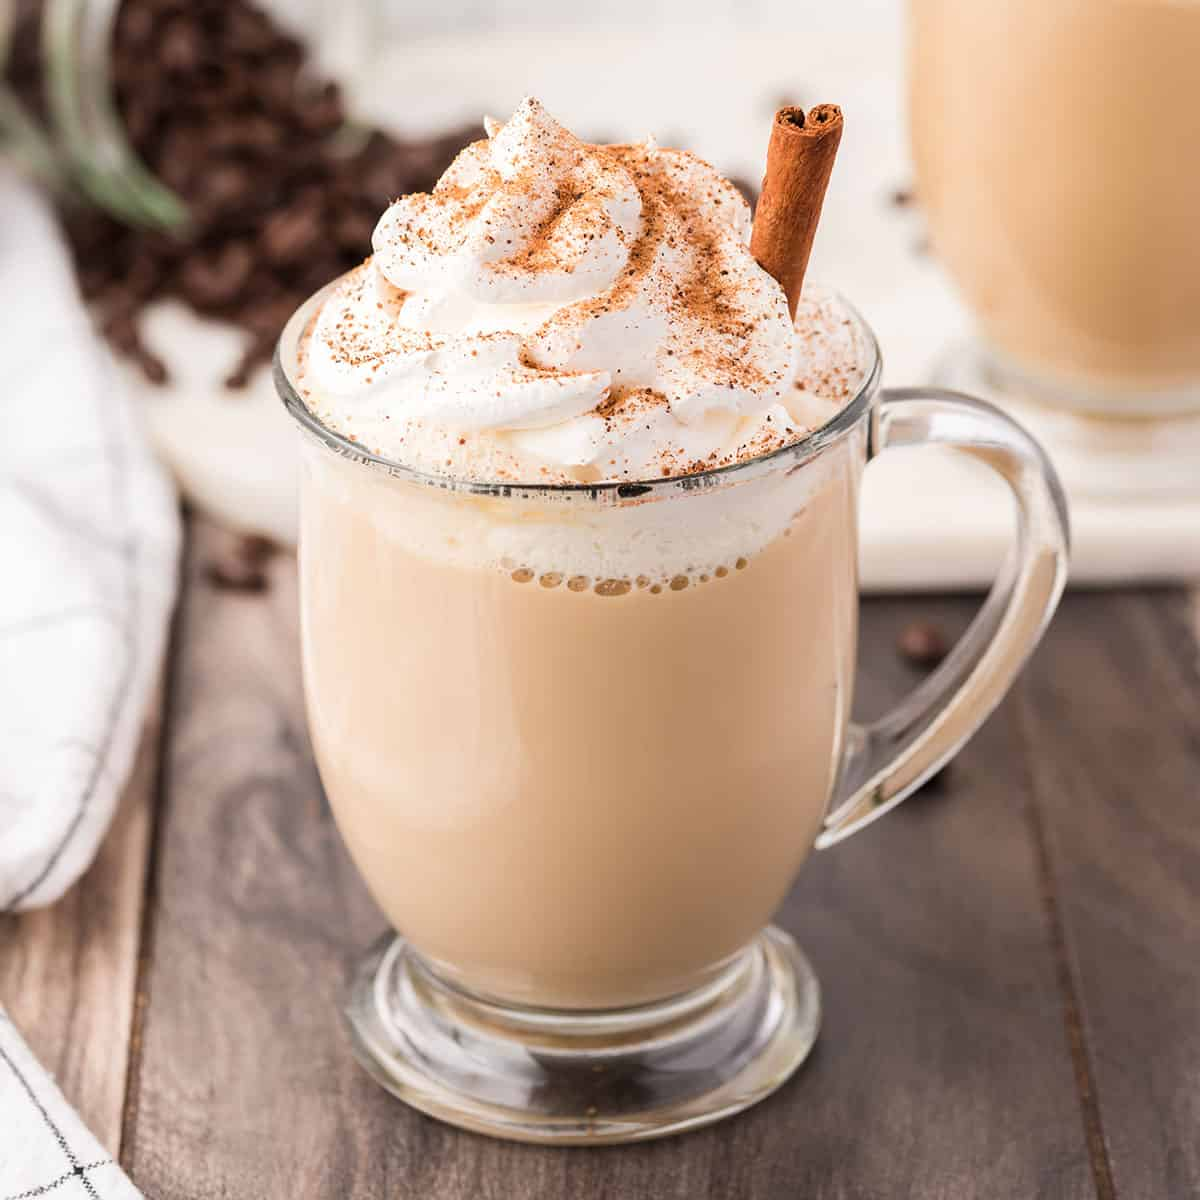 A glass of Eggnog Latte with cinnamon stick